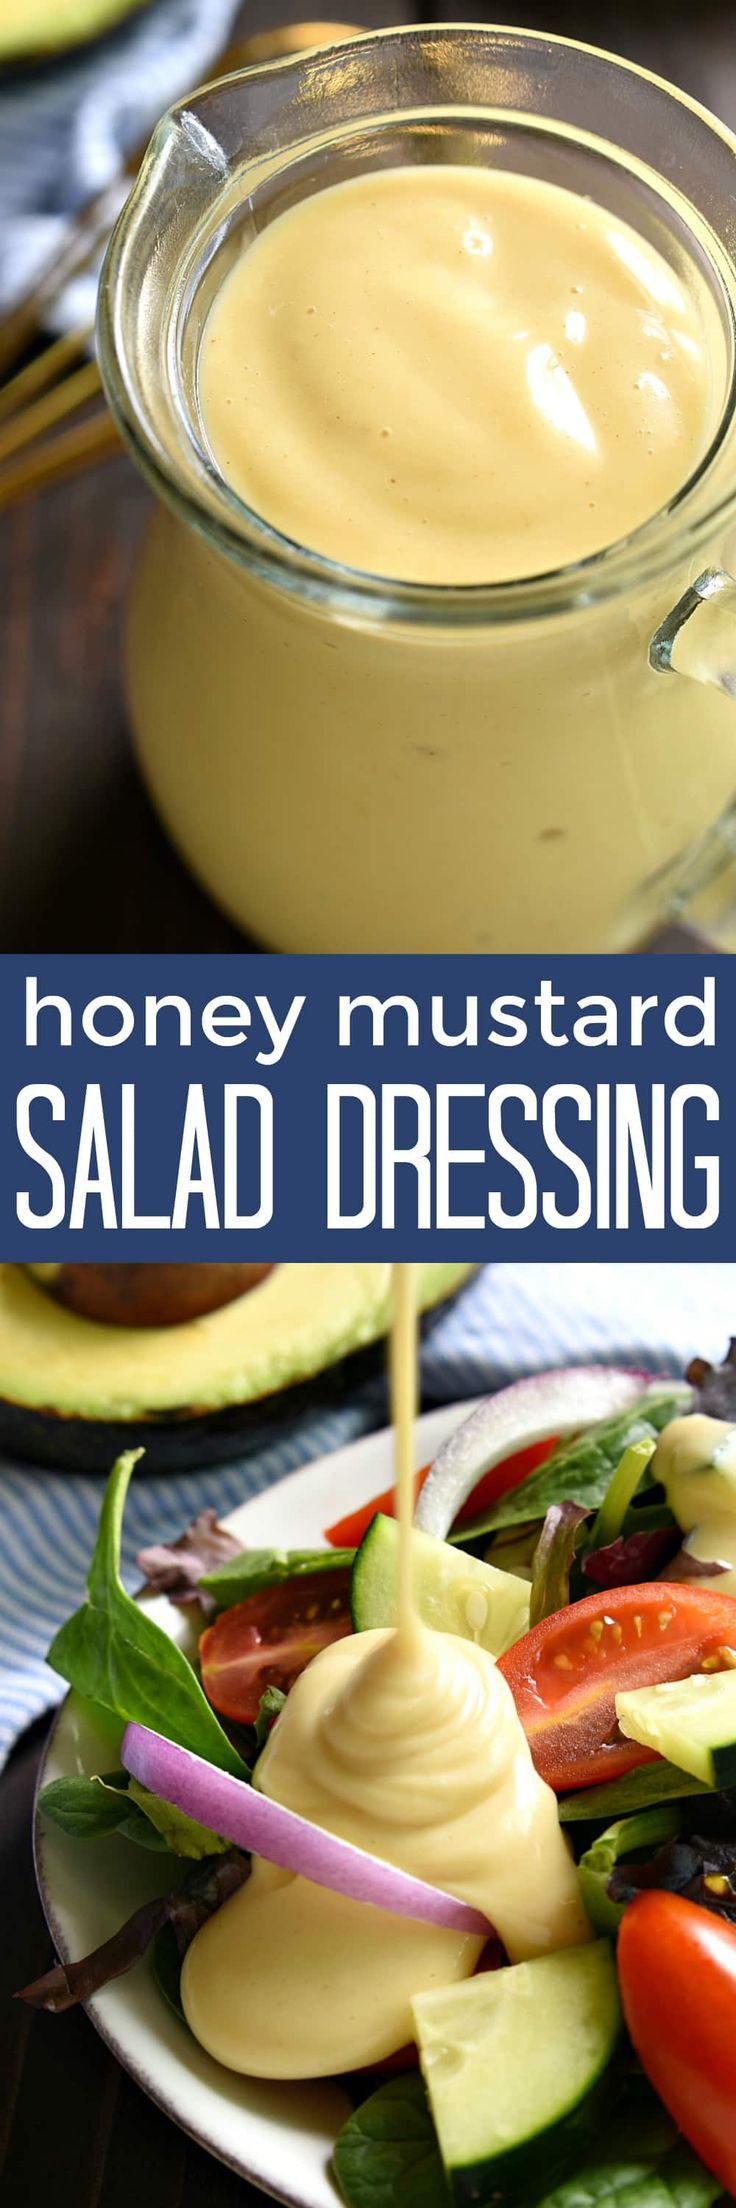 Honey Mustard Salad Dressing - made with just 5 ingredients and ready in no time at all! The perfect topping for any salad….and it also makes a delicious dip!